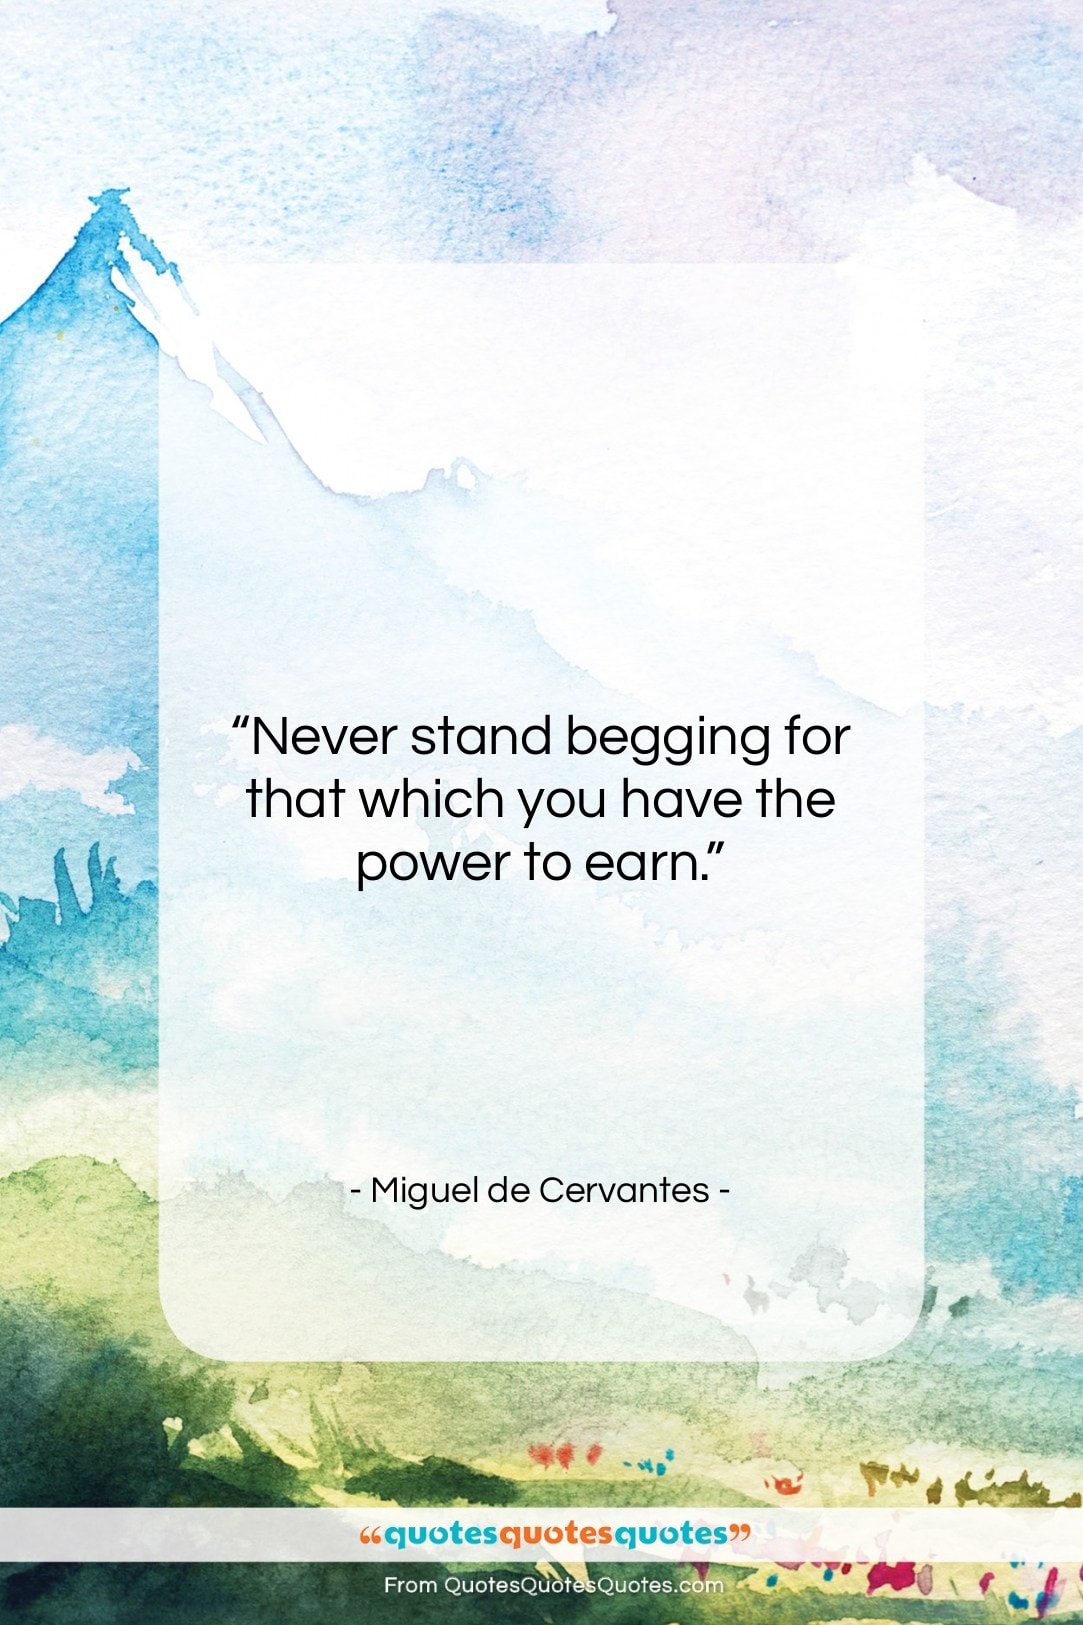 """Miguel de Cervantes quote: """"Never stand begging for that which you…""""- at QuotesQuotesQuotes.com"""